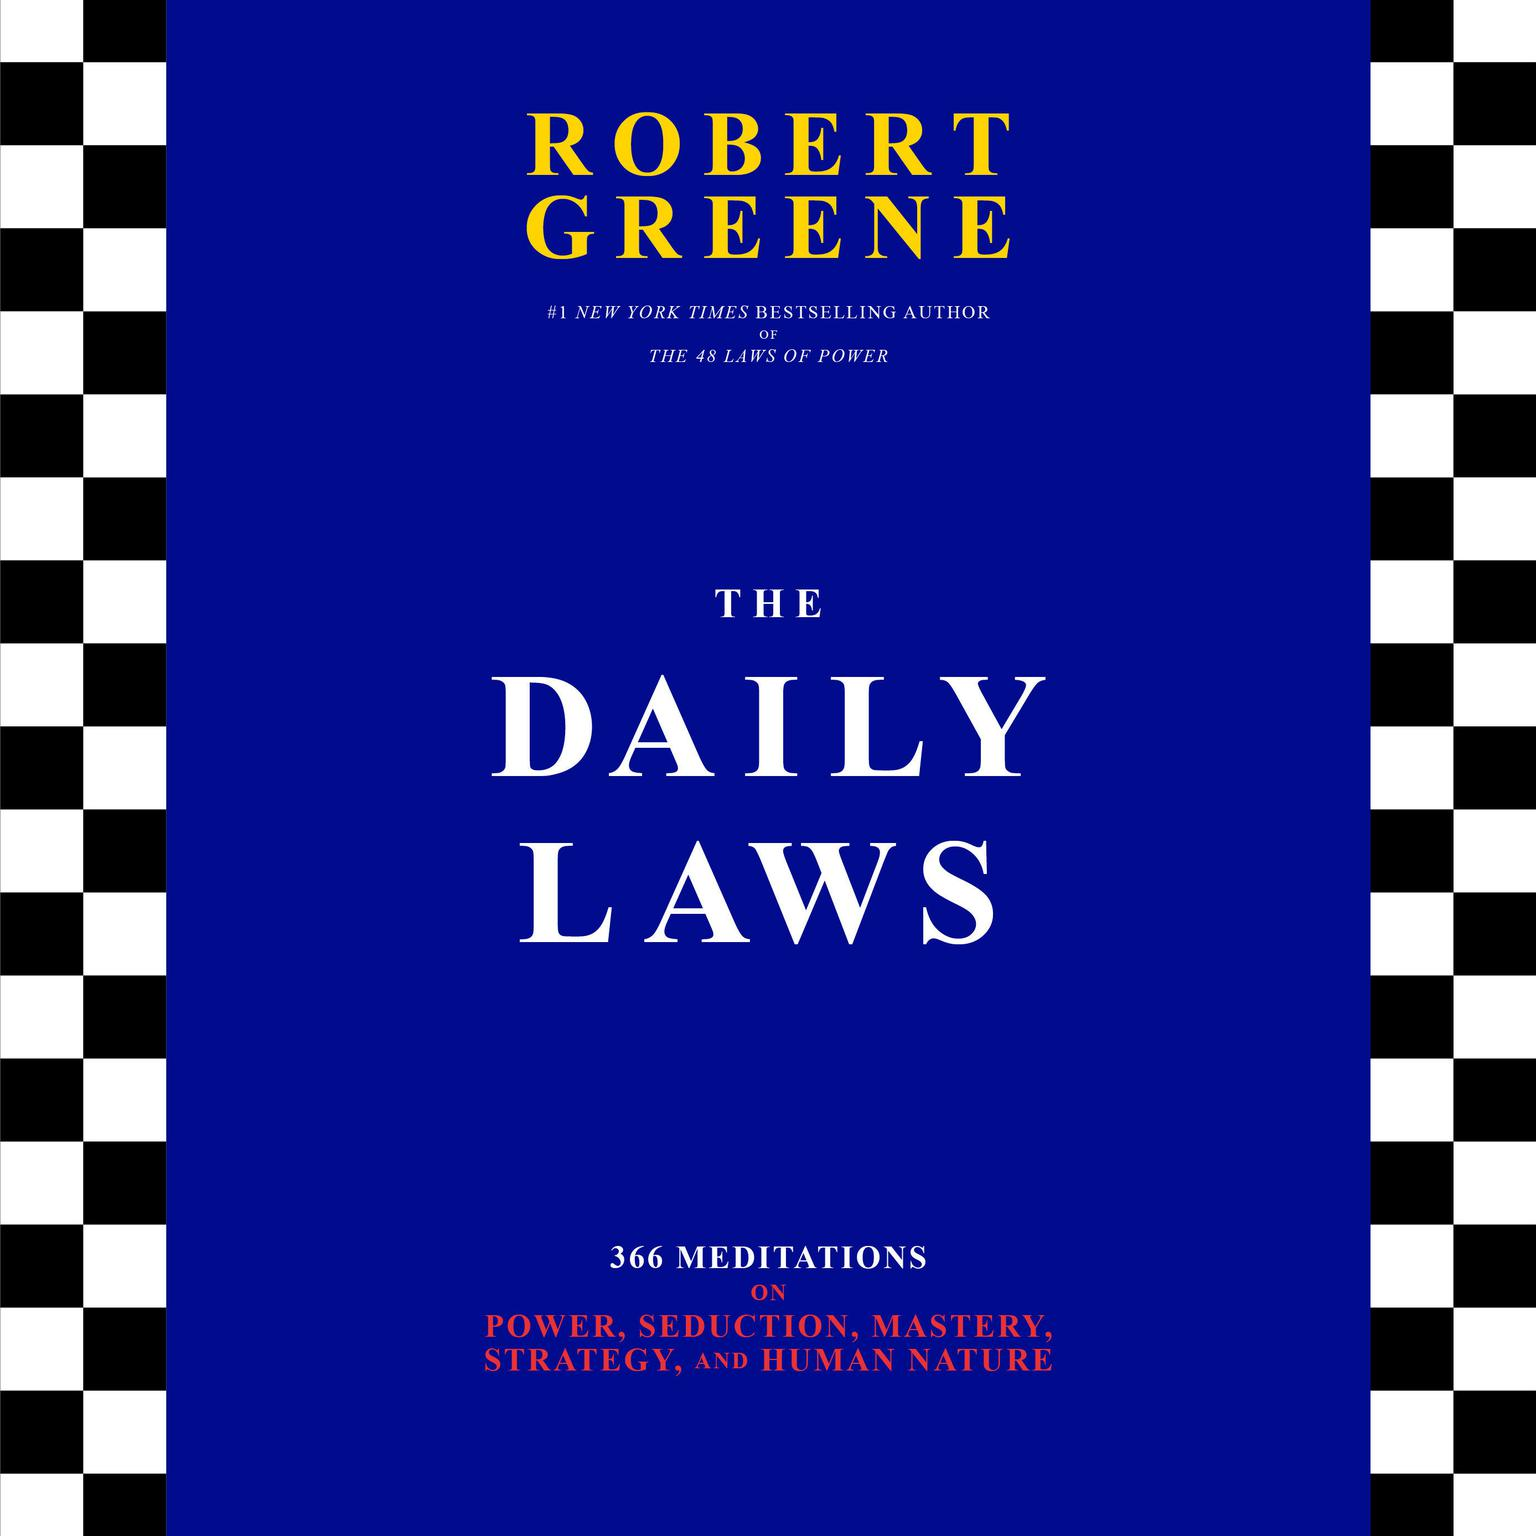 The Daily Laws: 366 Meditations on Power, Seduction, Mastery, Strategy, and Human Nature Audiobook, by Robert Greene